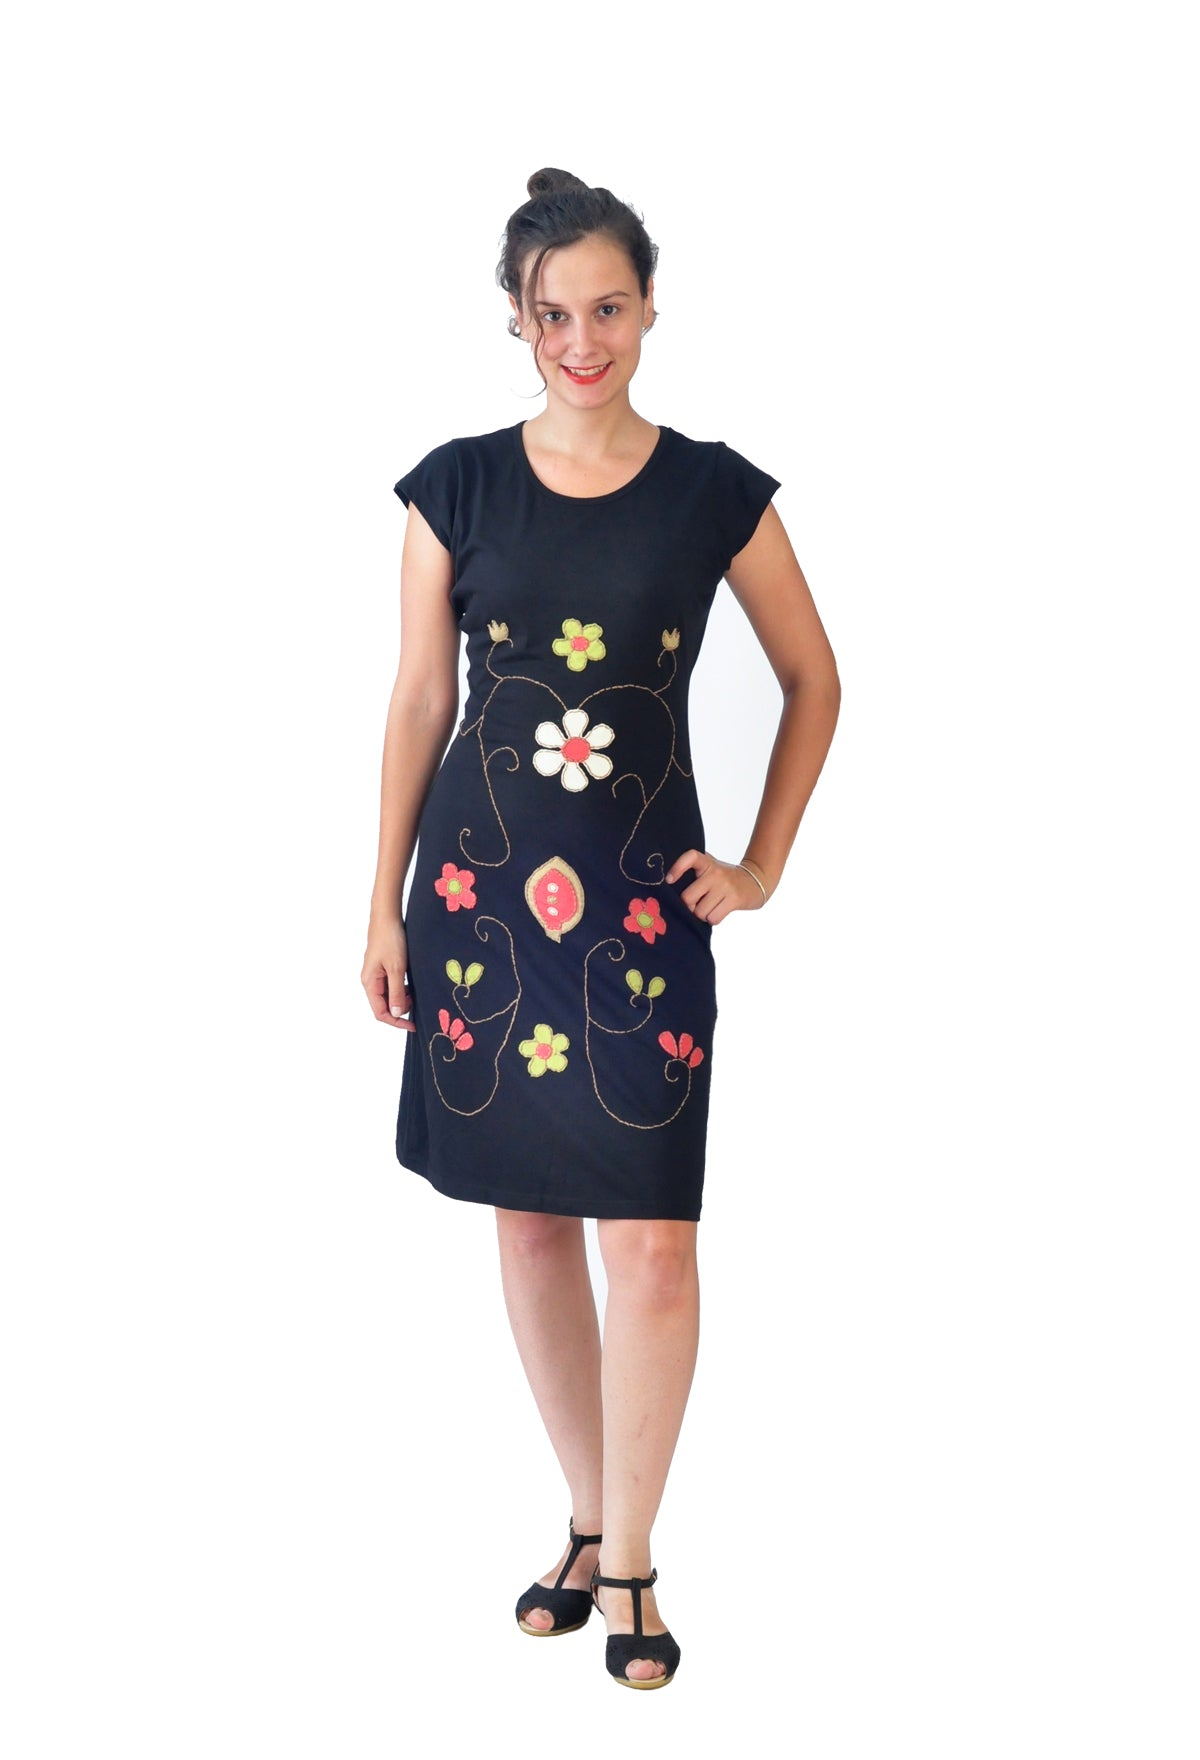 Ladies Short Sleeved Cotton Dress with Multicolored Flower Embroidery - Craze Trade Limited